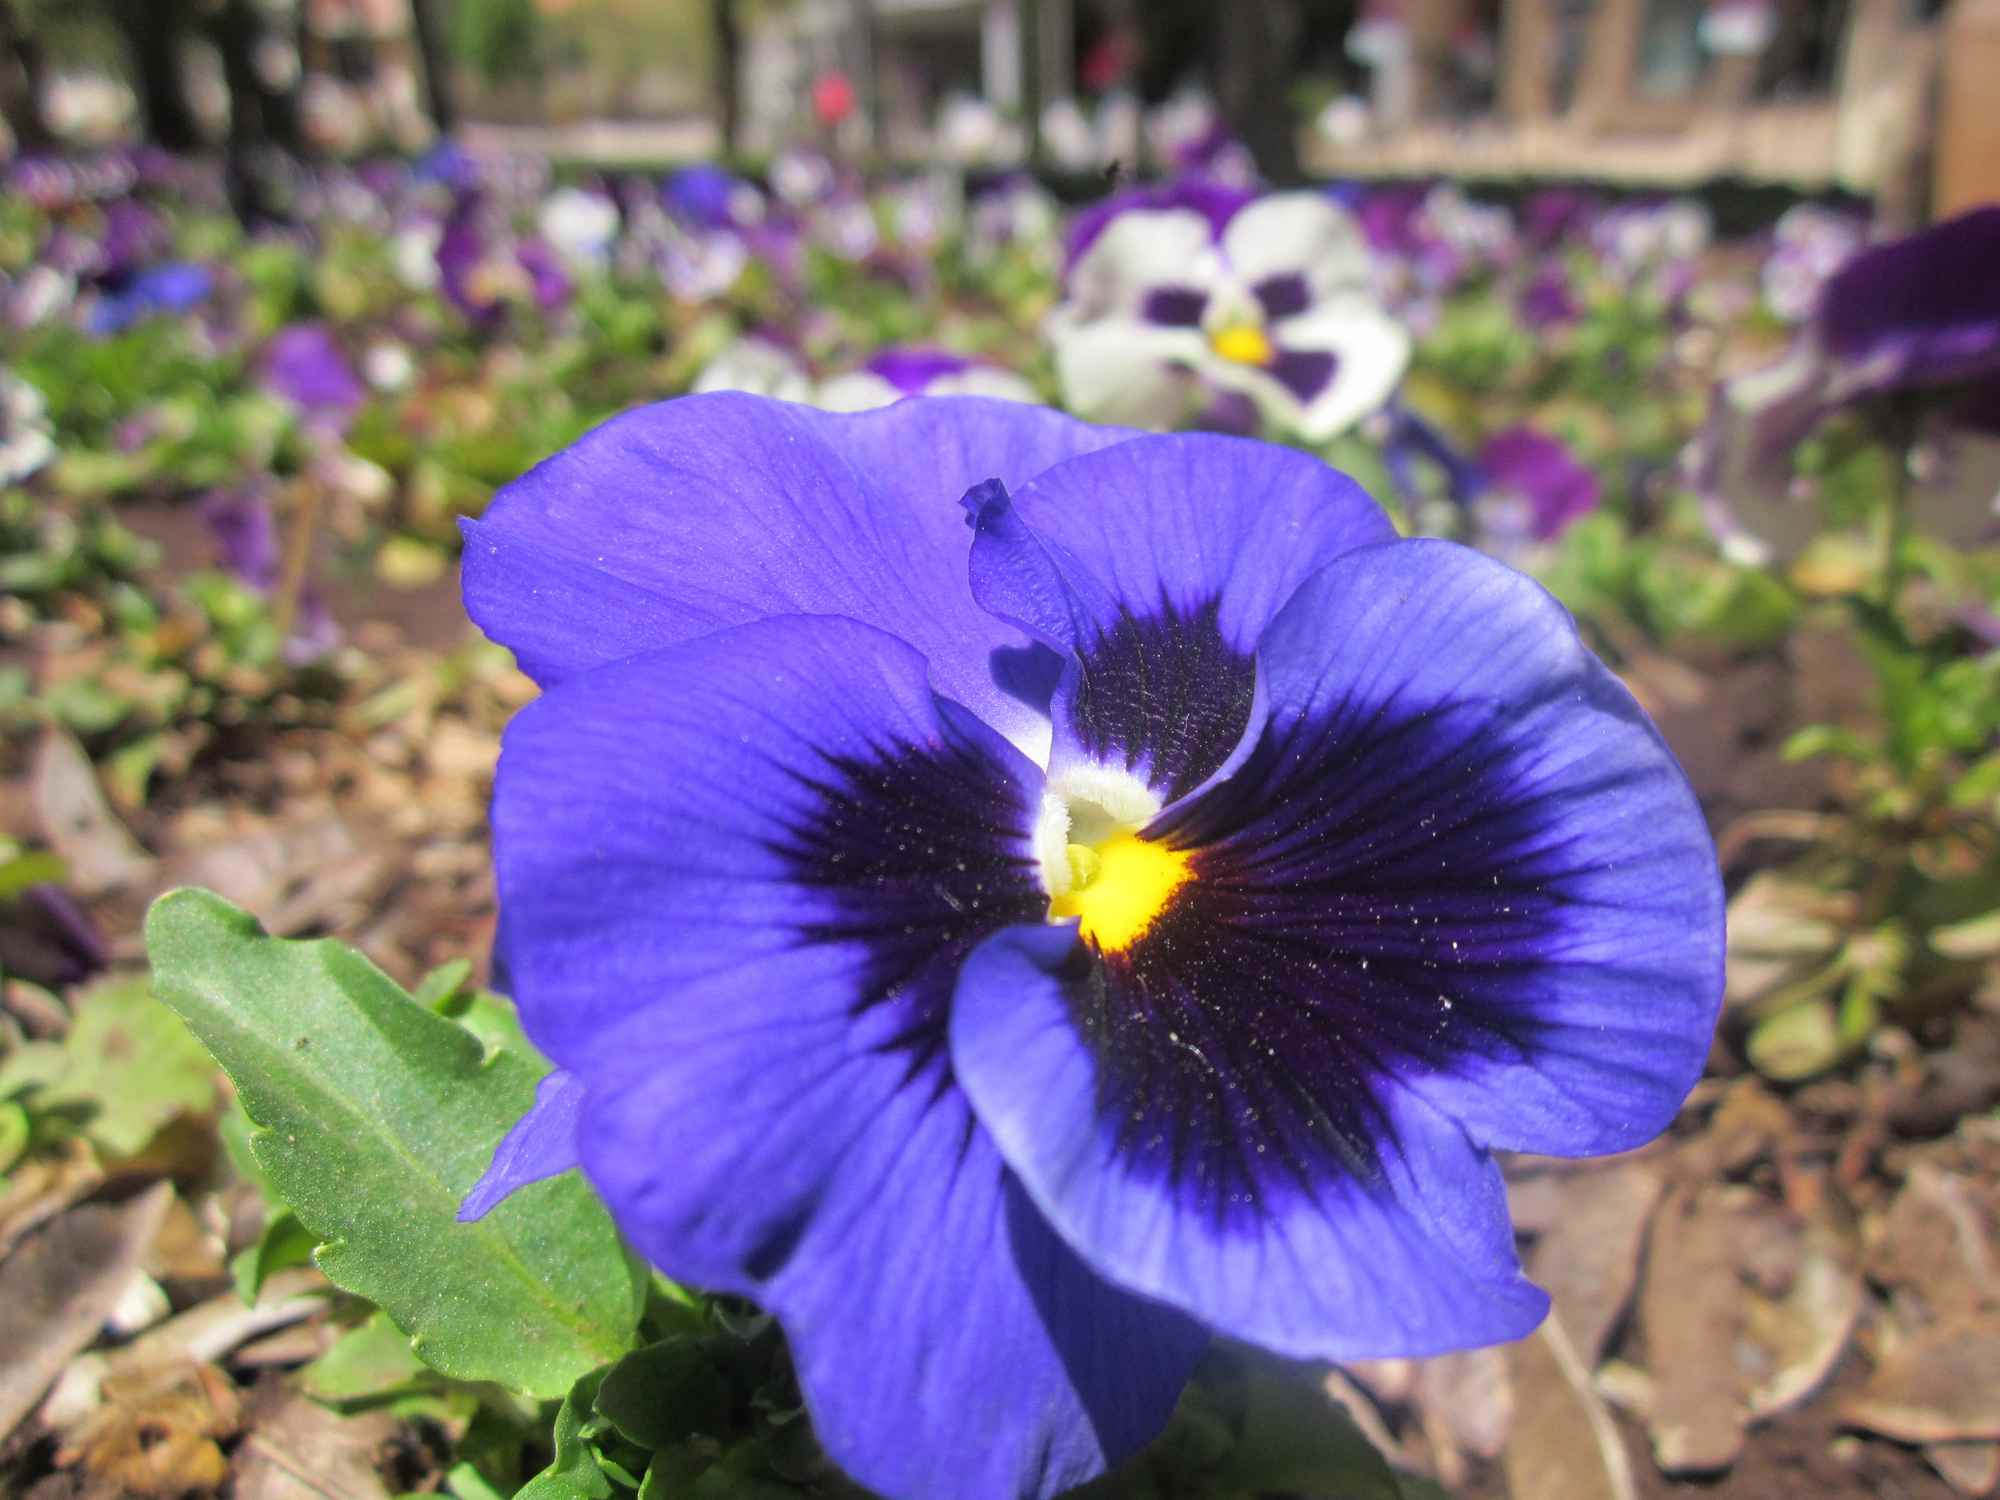 Pansy blooming